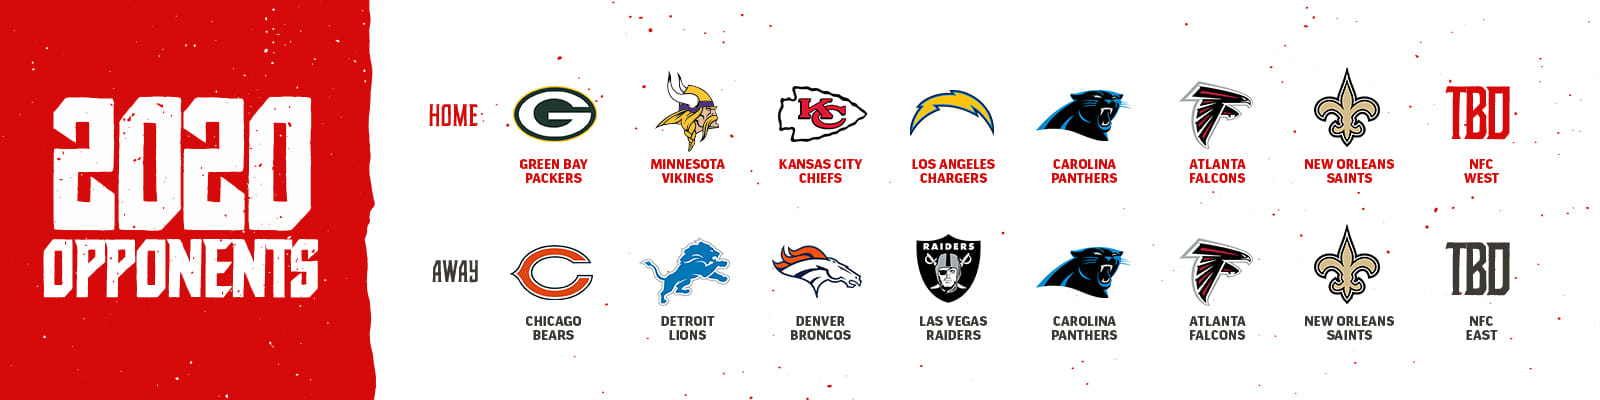 Lions Schedule 2020.Tampa Bay Buccaneers Future Opponents